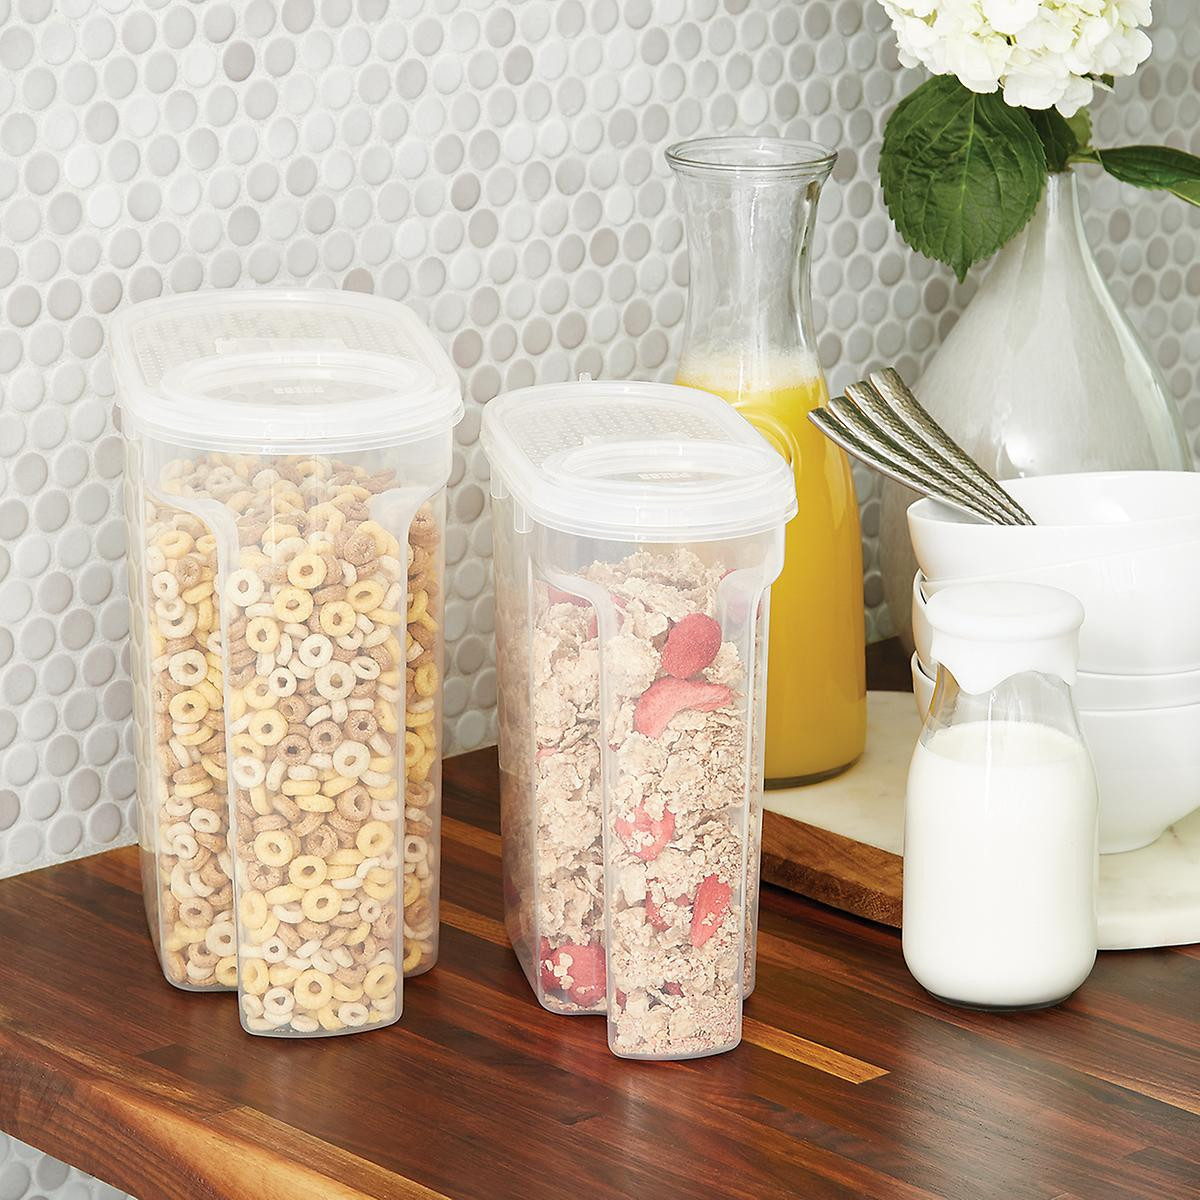 small clear plastic vases of tellfresh store n pour dry food dispensers the container store intended for tellfresh store n pour dry food dispensers